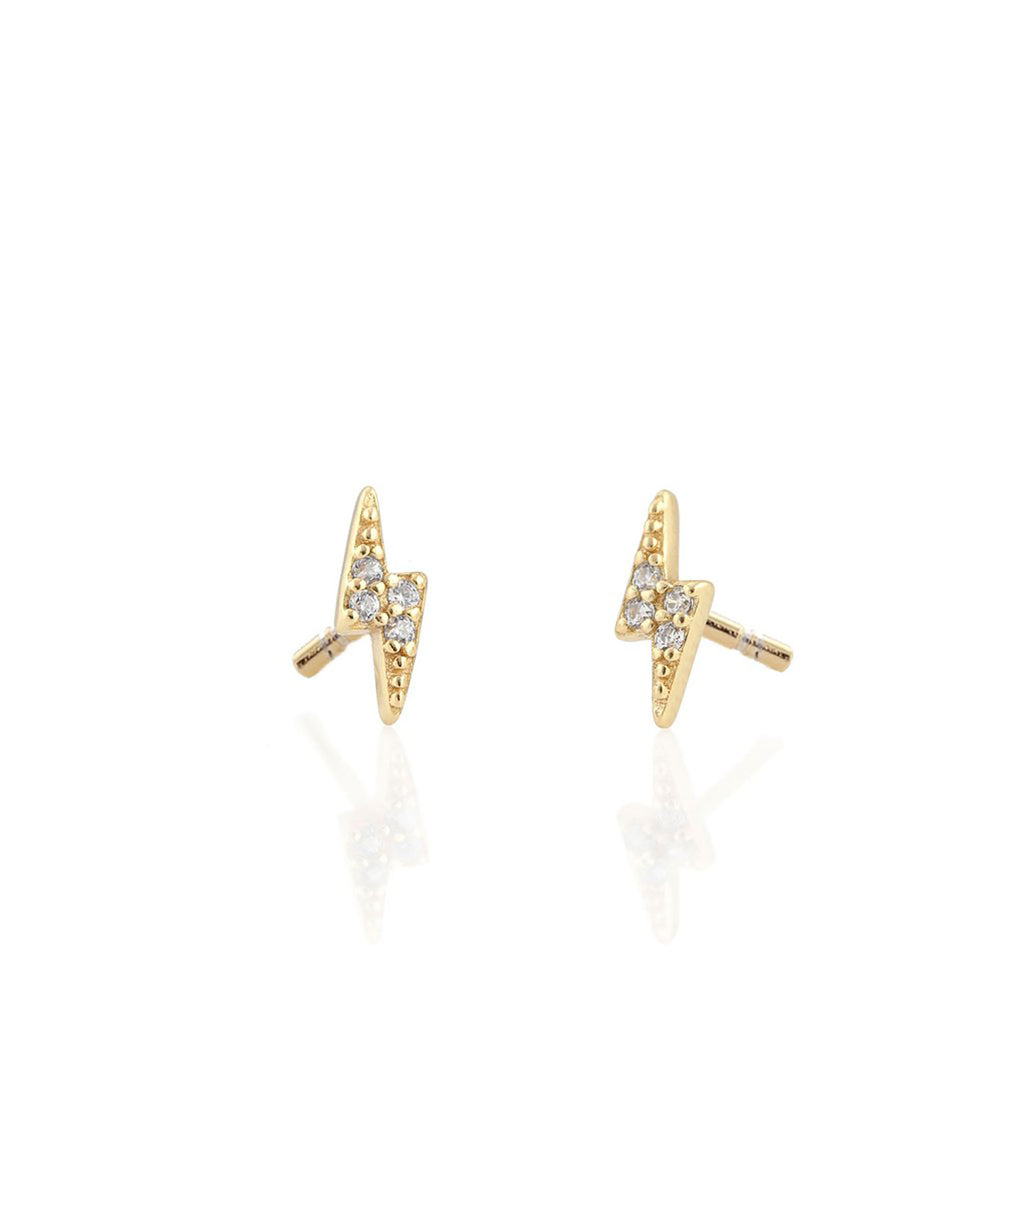 Kris Nations Pave Gold Bolt Earrings